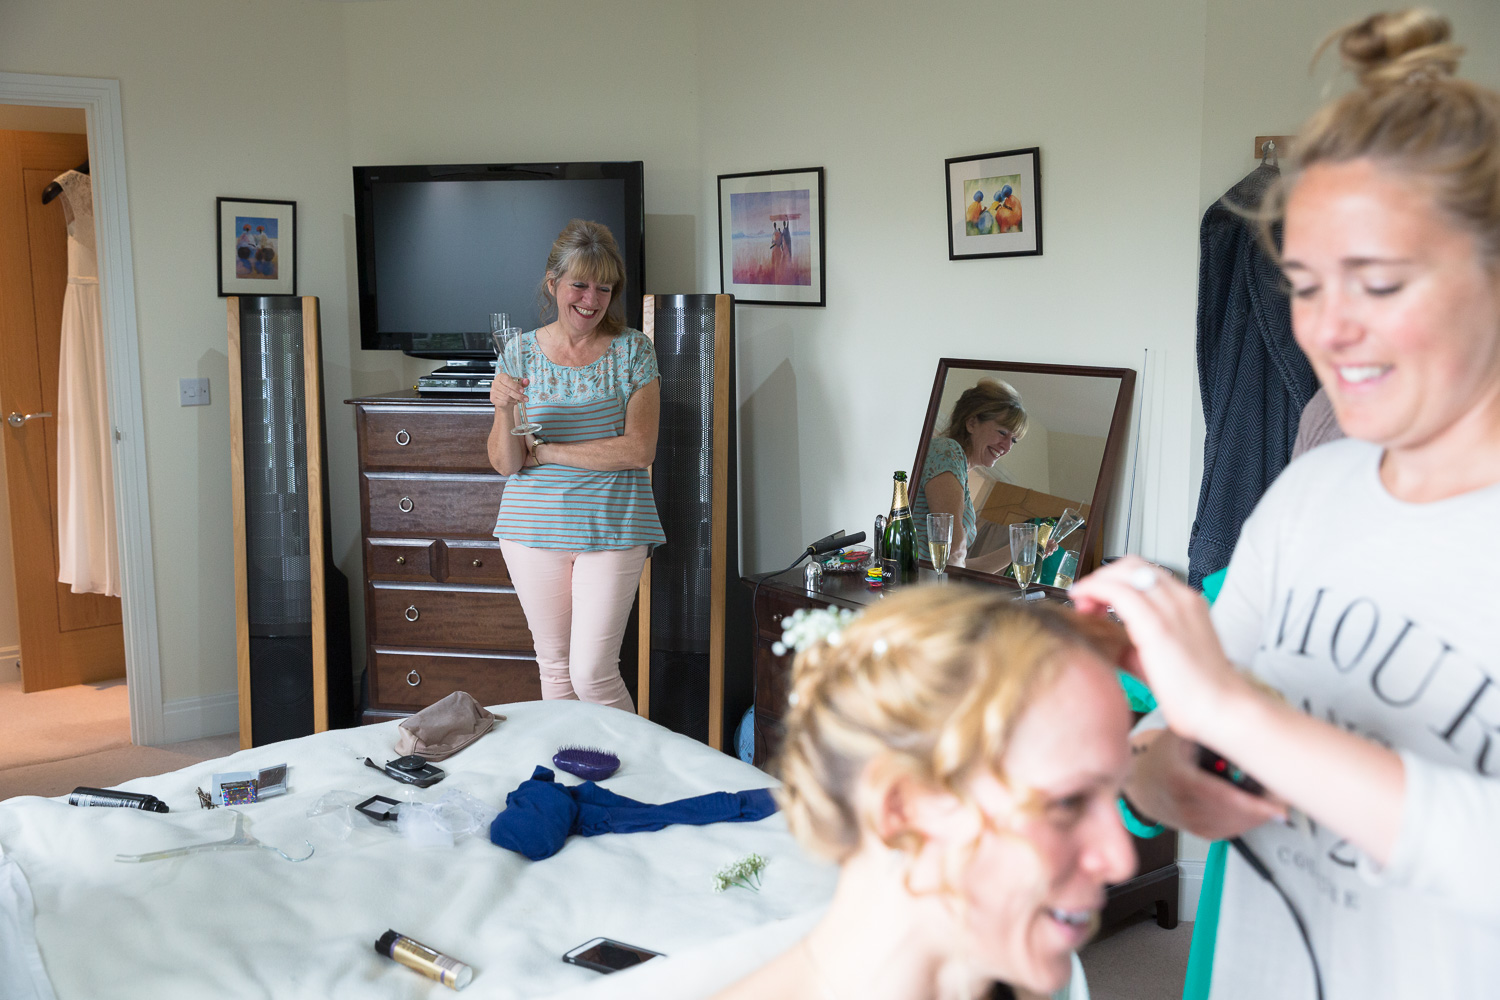 Documentary wedding photography mother of the bride during bridal prep